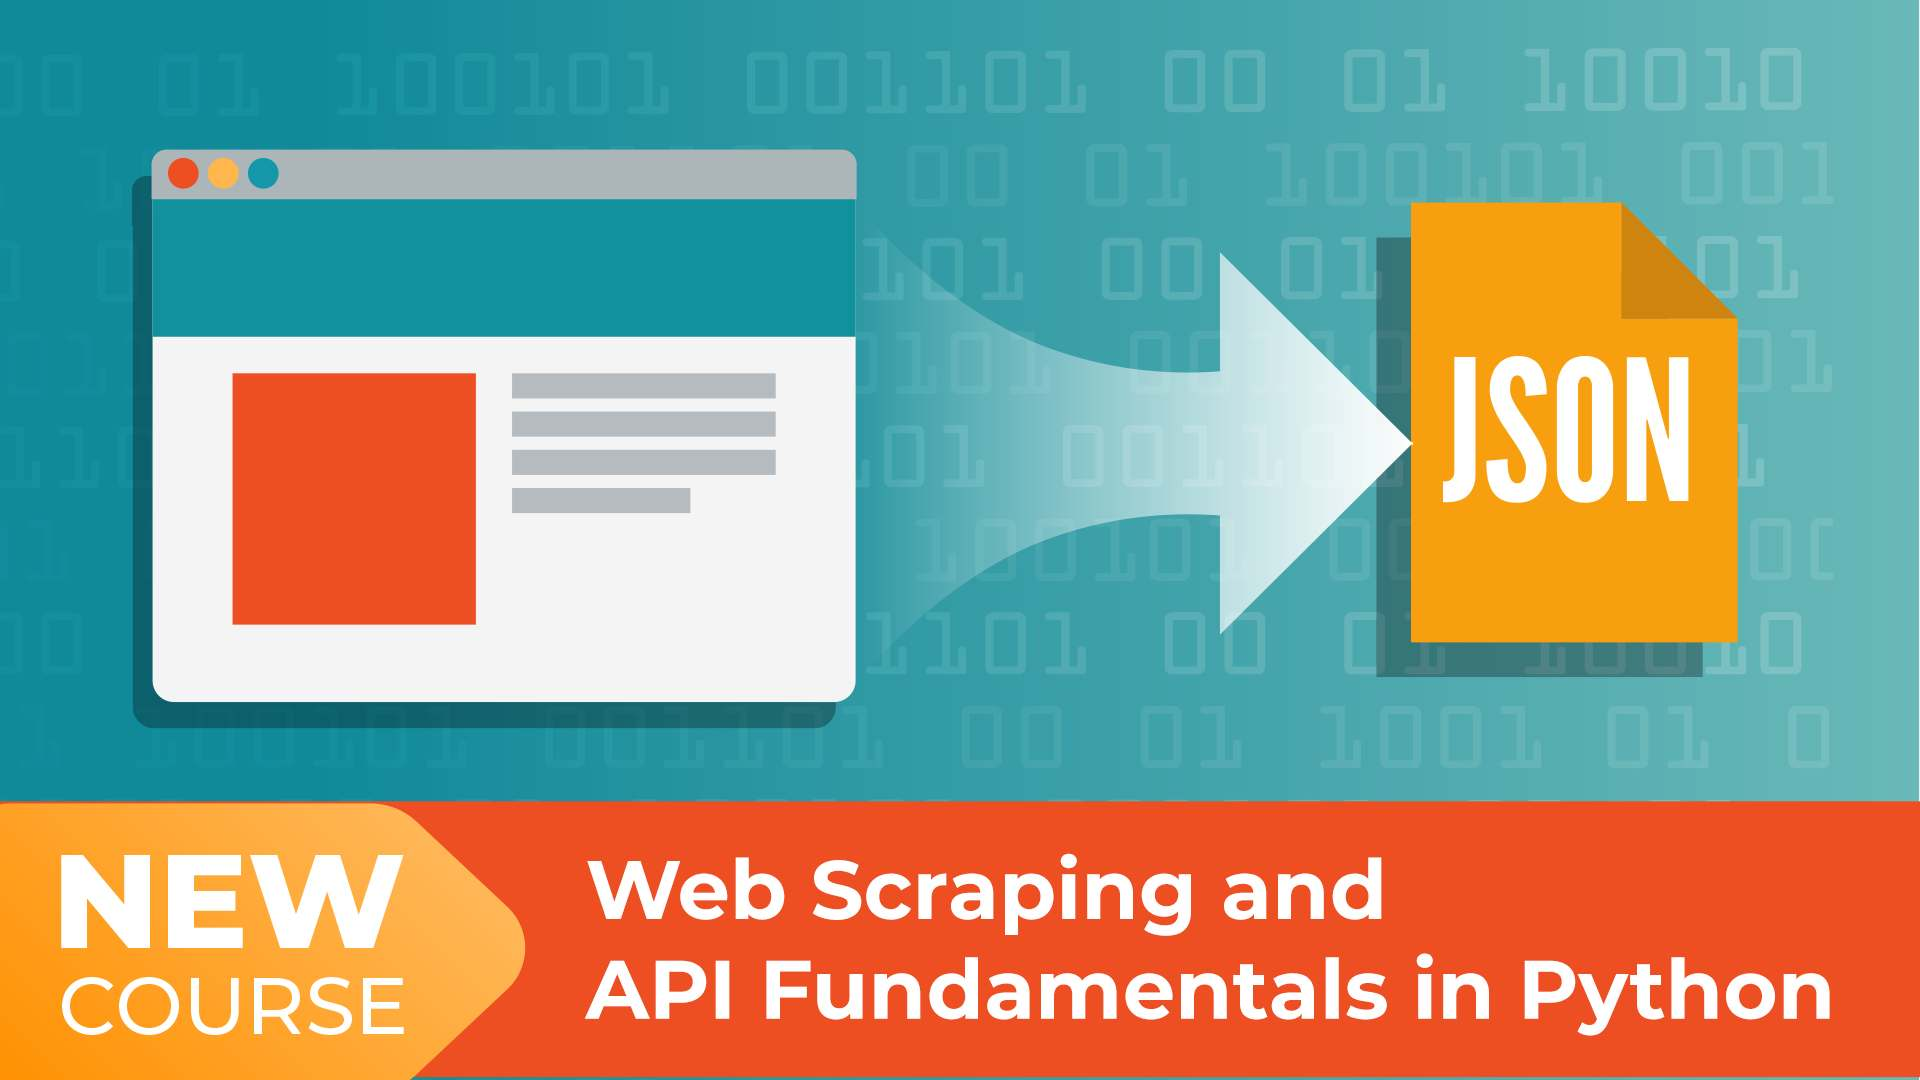 web scraping and api fundamentals course, web scraping, api fundamentals, data extraction